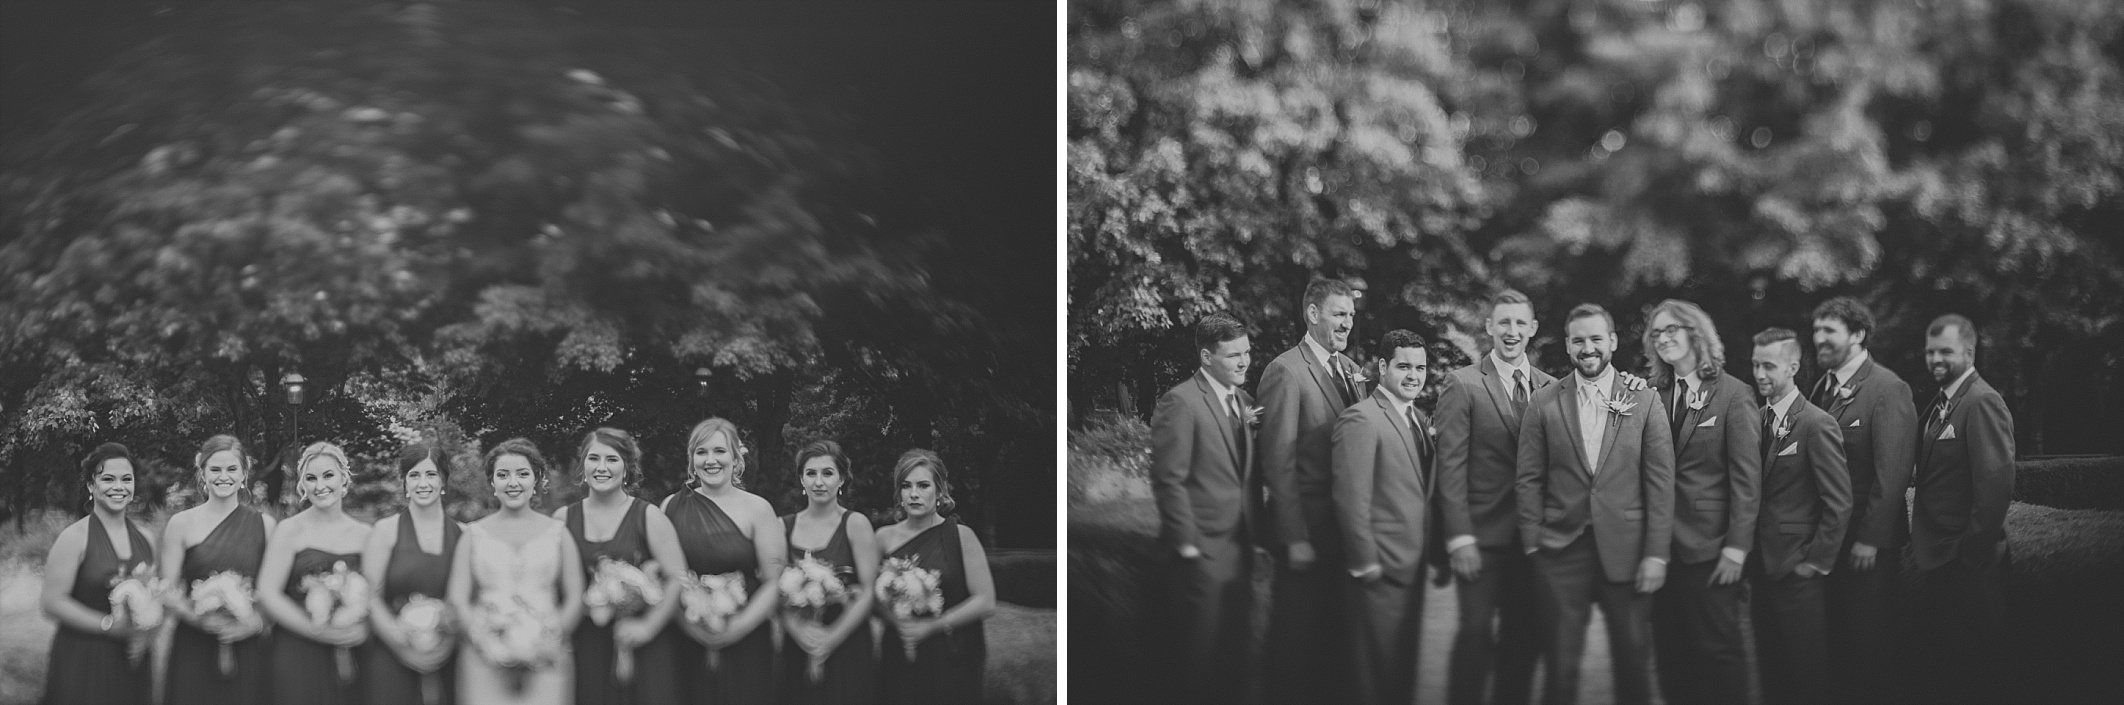 wedding-photographer-dayton-ohio_0153.jpg